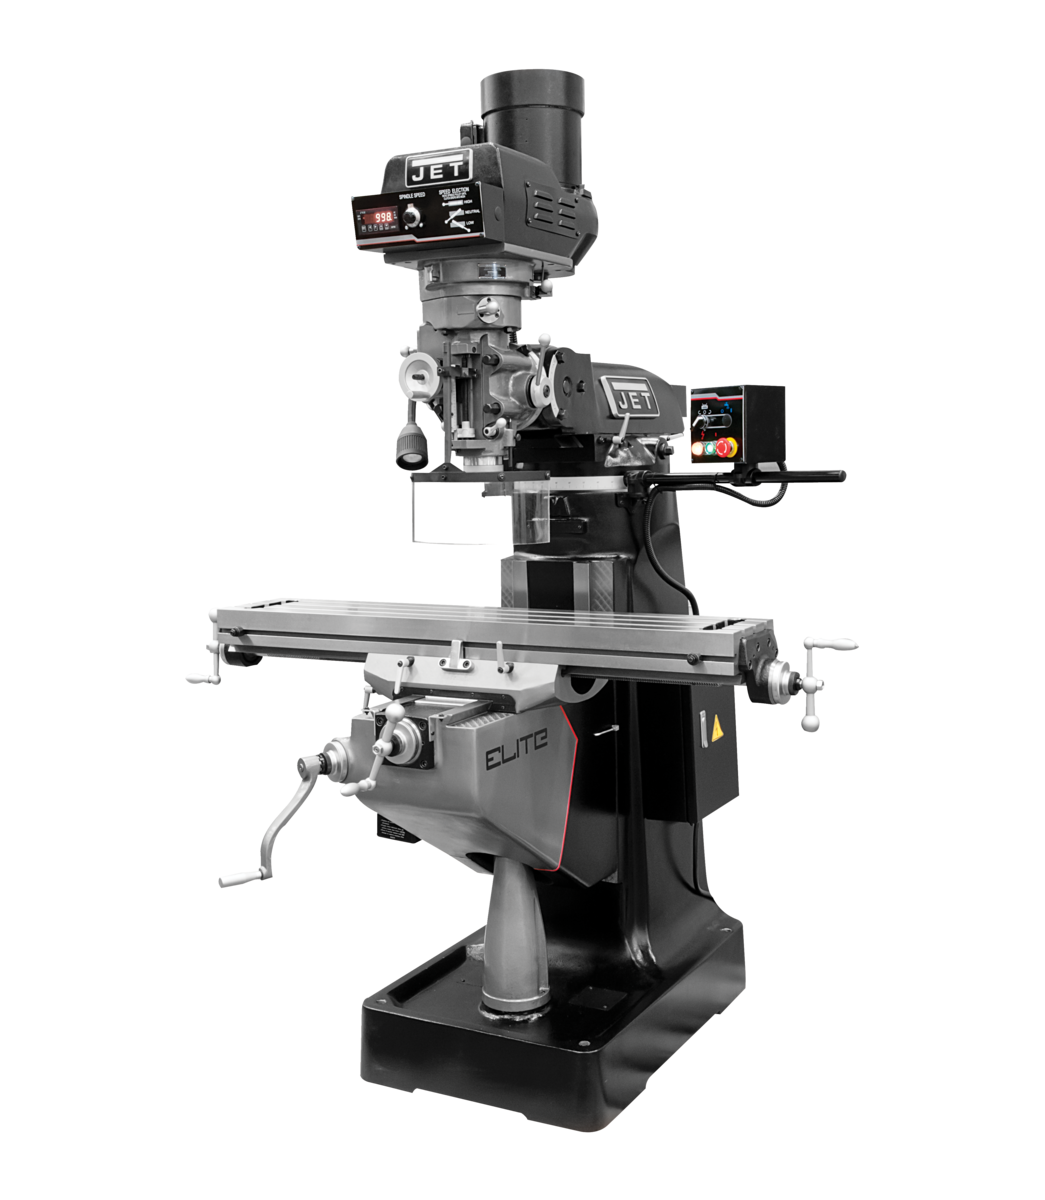 EVS-949 Mill with 3-Axis ACU-RITE 303  (Knee) DRO and X, Y-Axis JET Powerfeeds